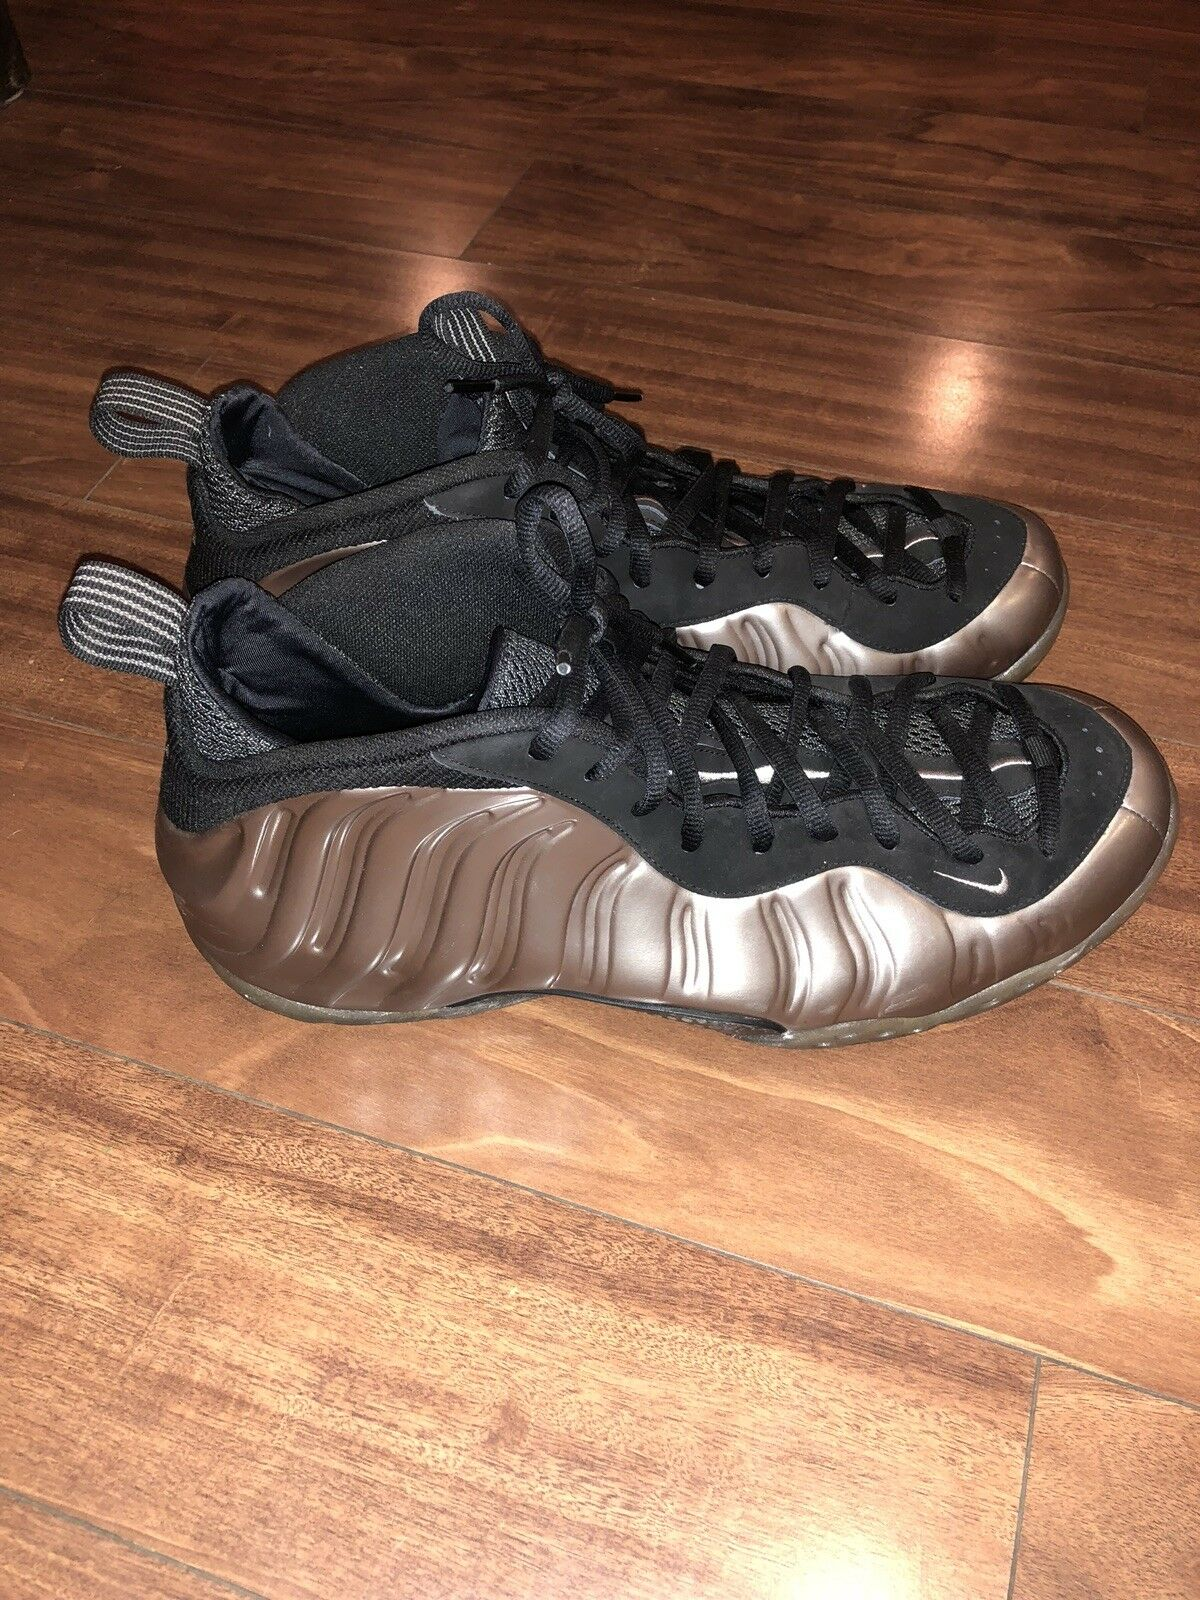 d17ceaa7bc Mint Nike Air Foamposite One Metallic Pewter Black shoes Size 15 US ...